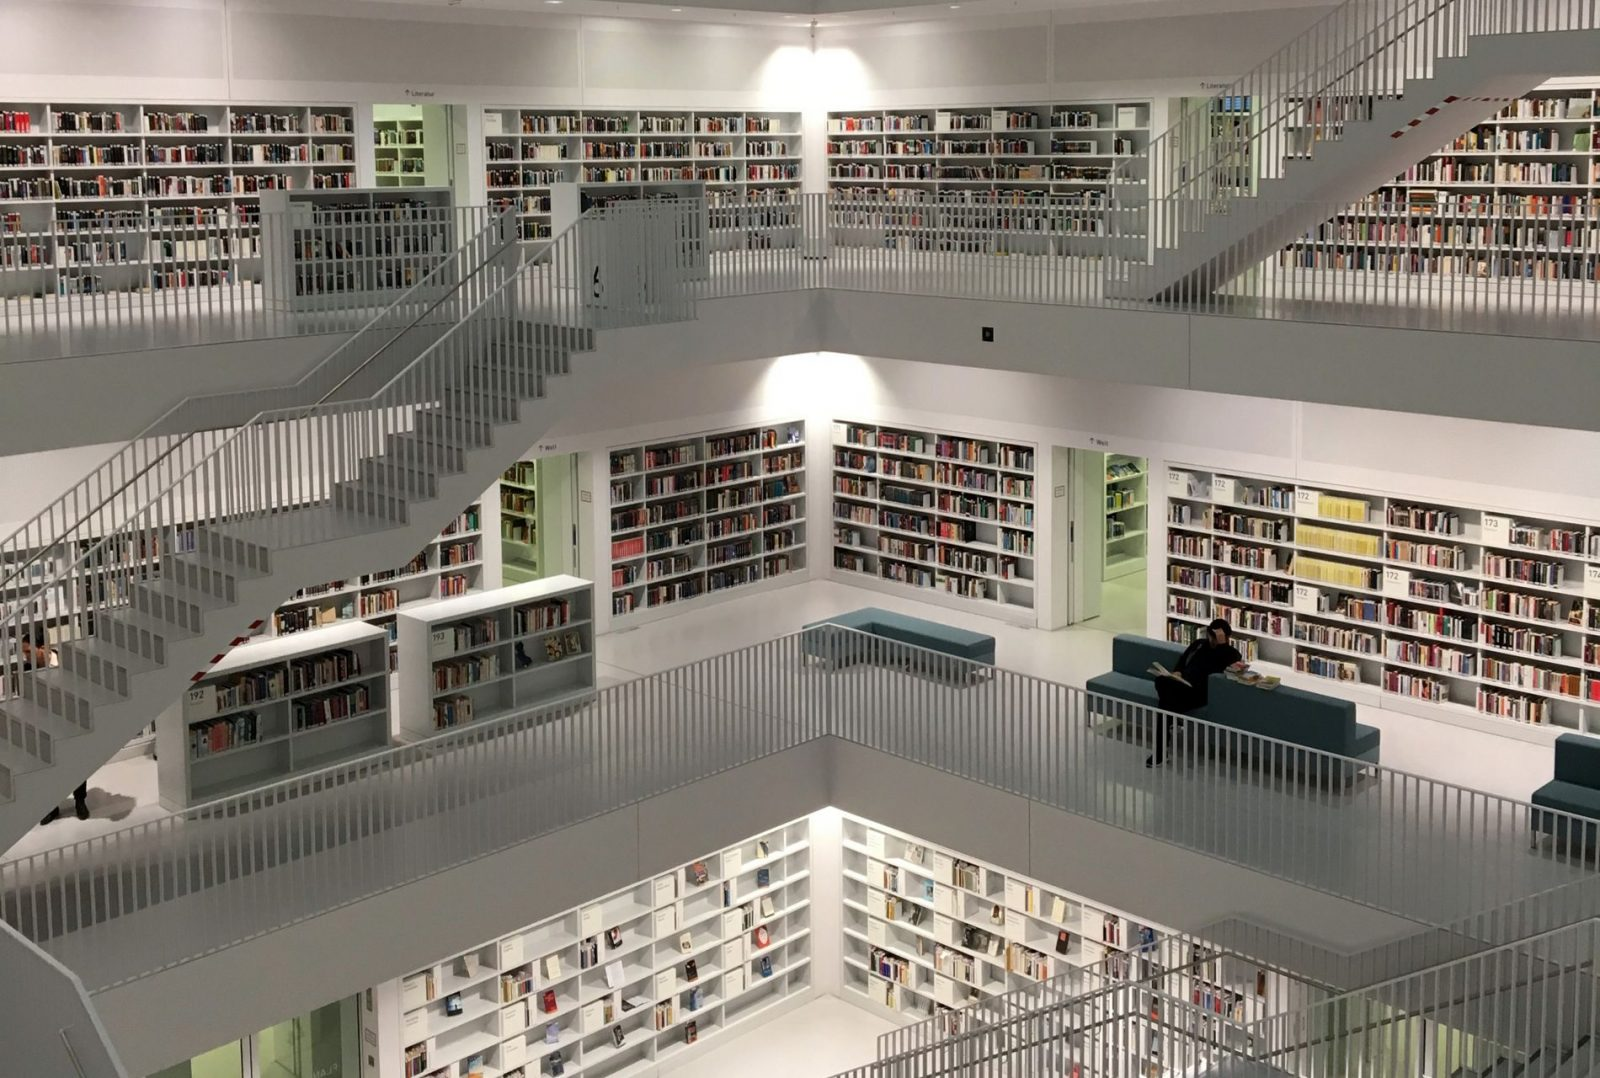 LIbrary with stairs. From https://unsplash.com/photos/ljp-ewA23lc